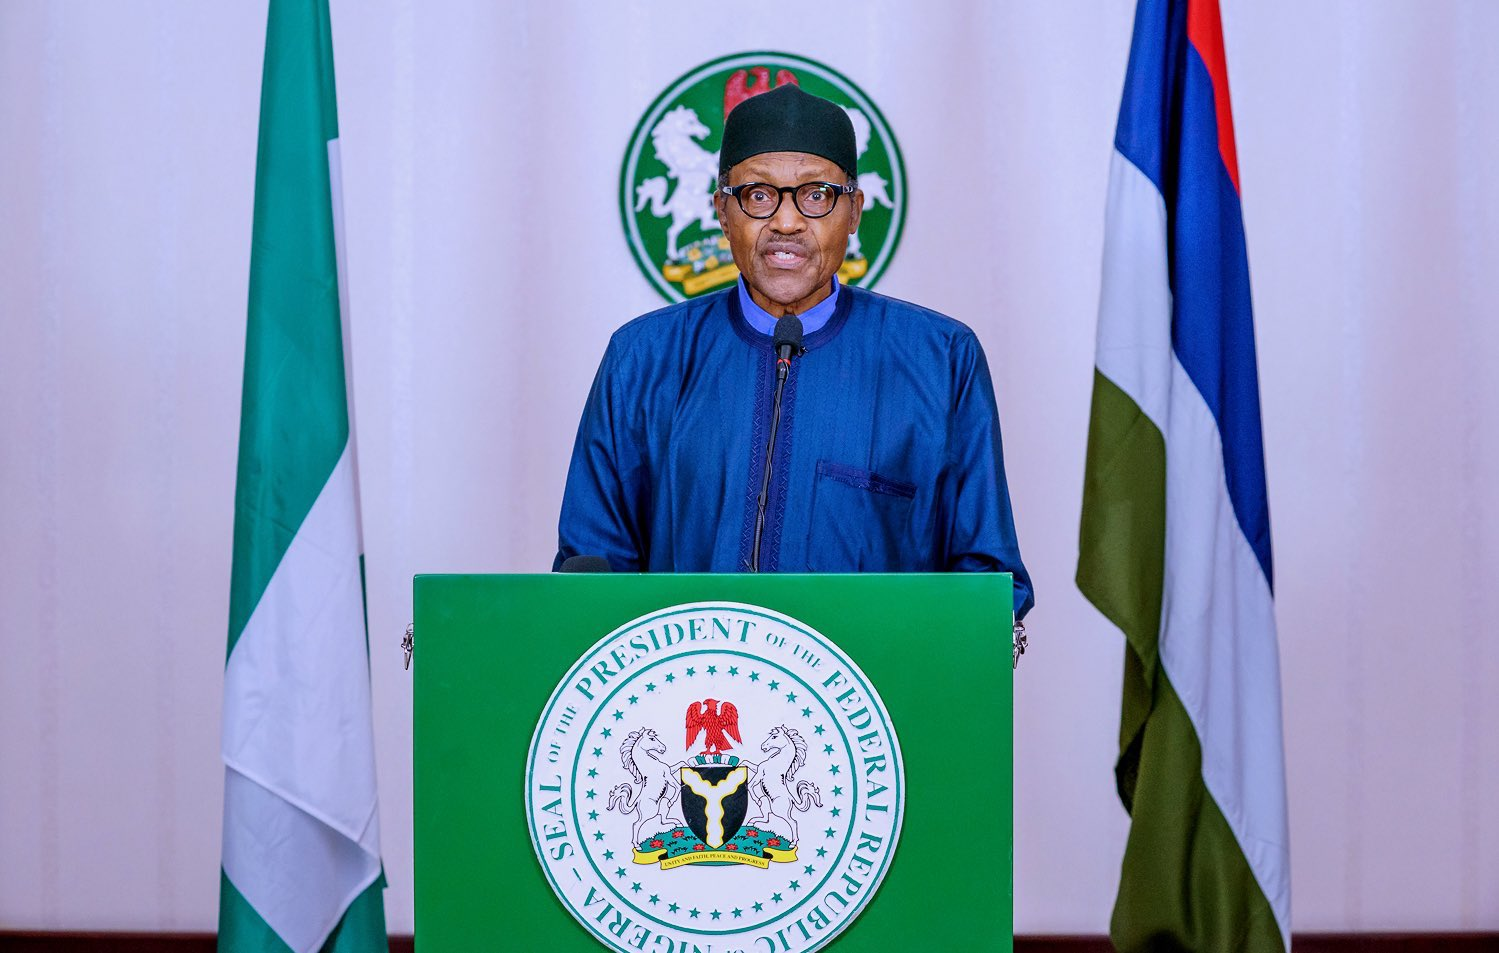 Buhari appoints 11 judges for FCT High Court, others